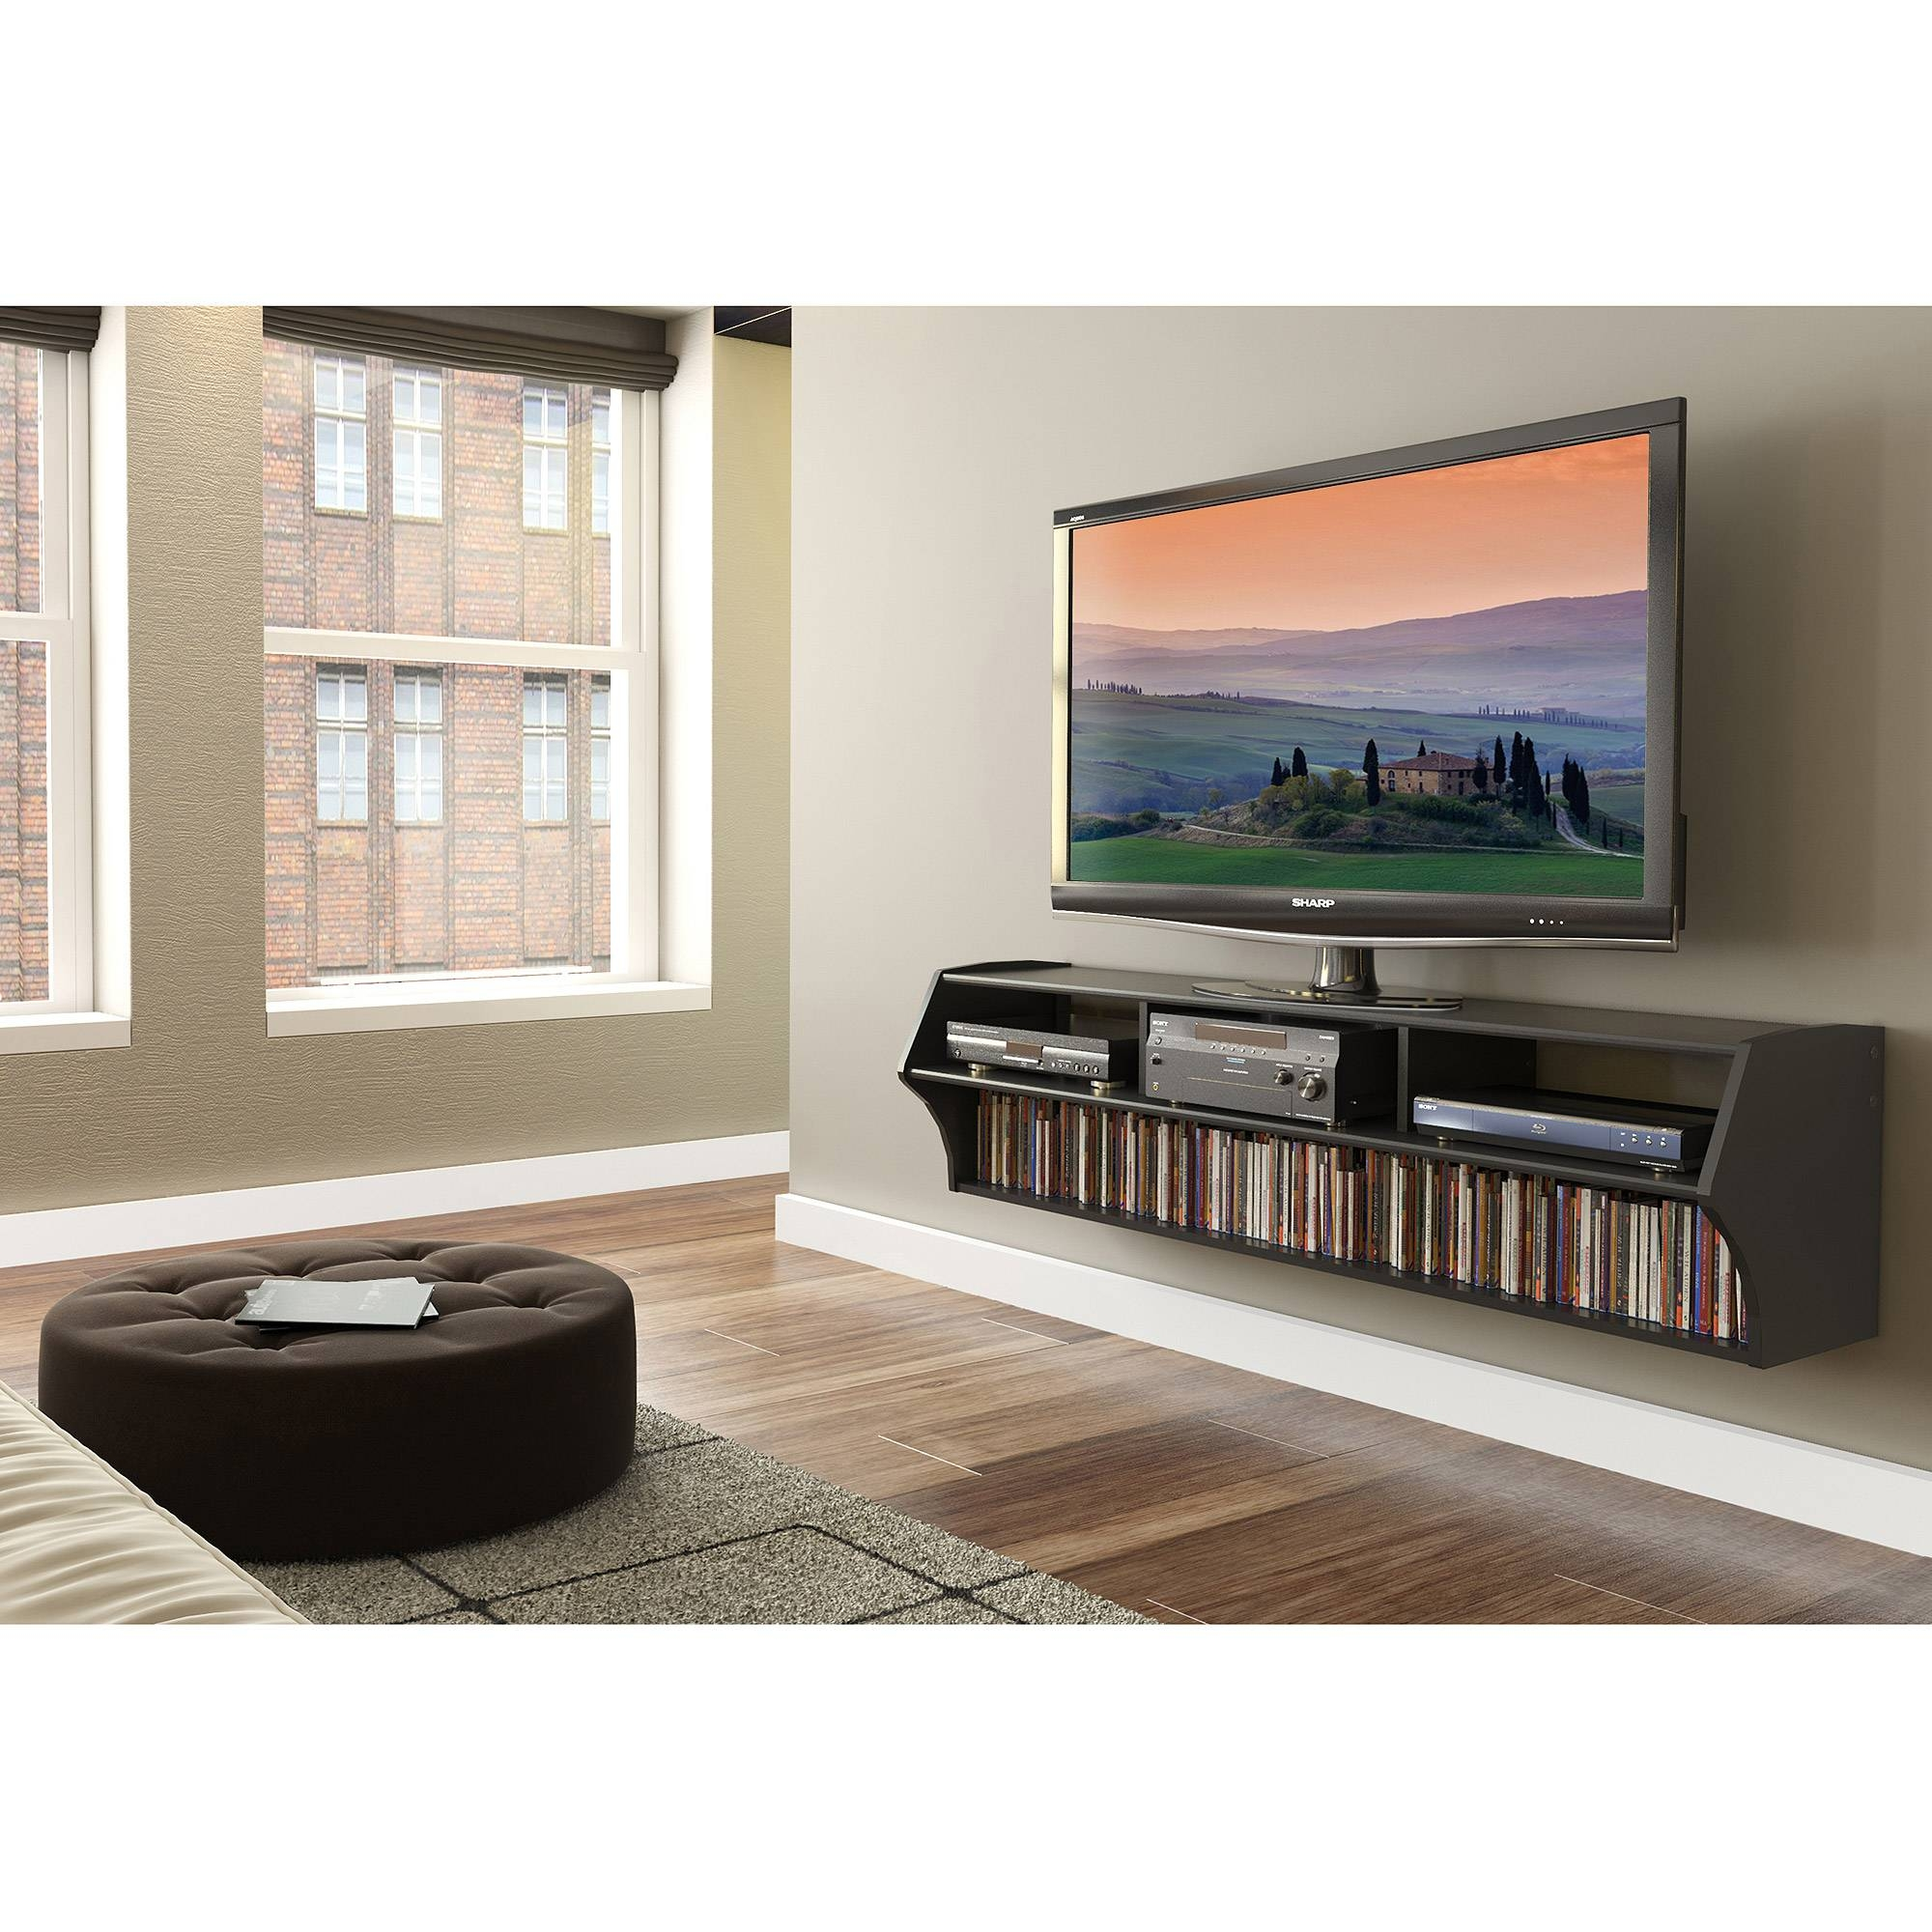 Fitueyes Universal Tabletop Tv Stand Base For 37 To 60 Inch Led with regard to Tv Stands for Large Tvs (Image 3 of 15)